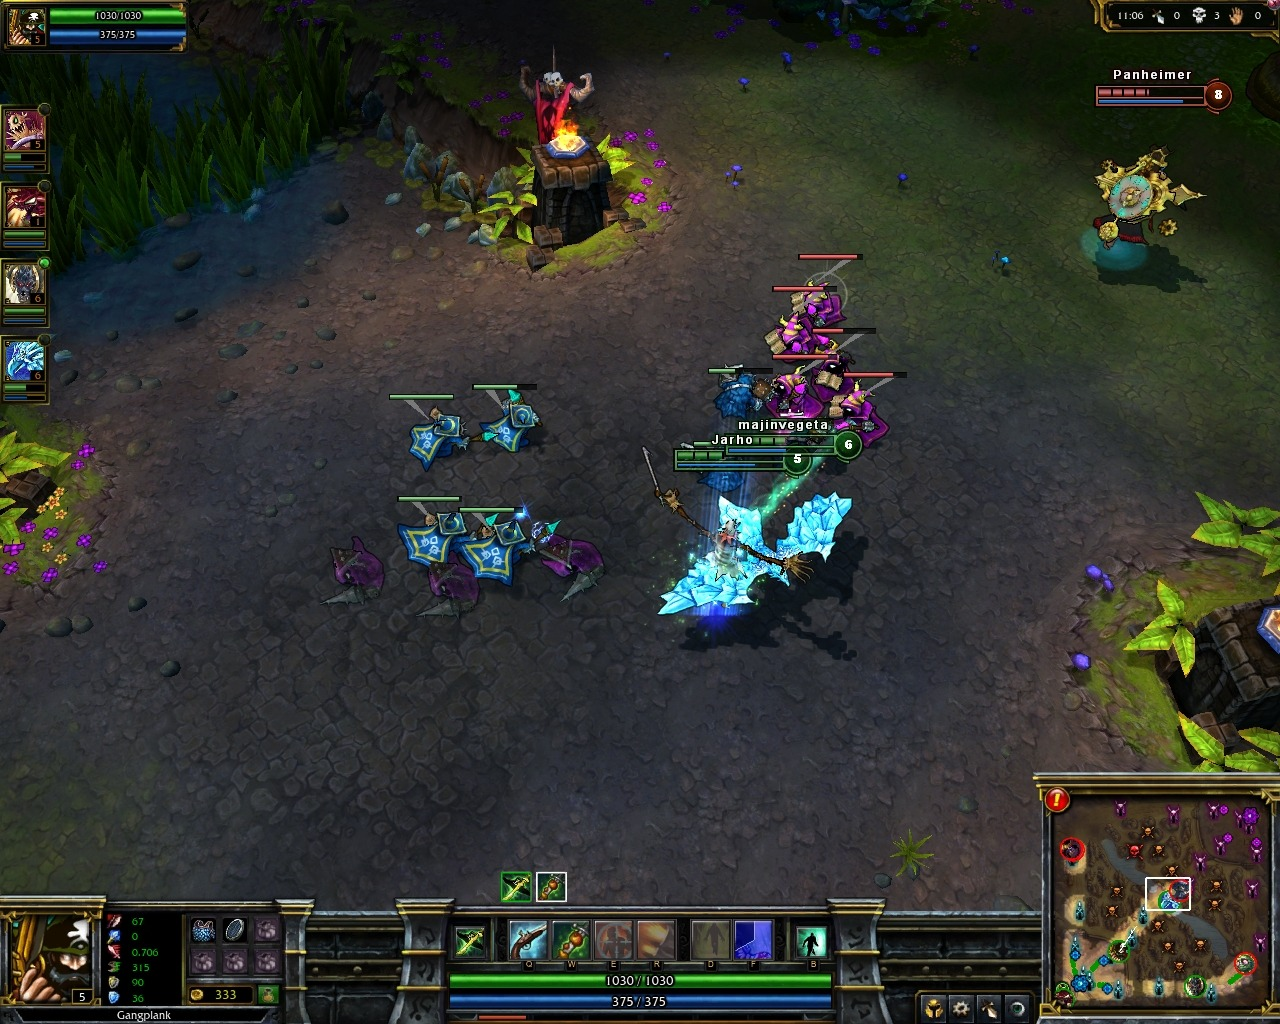 http://3.bp.blogspot.com/_St4Fsvx6Y8o/SwfpIbGIOnI/AAAAAAAACYI/OtC7ncEl_RQ/s1600/league-of-legends-pc-097.jpg